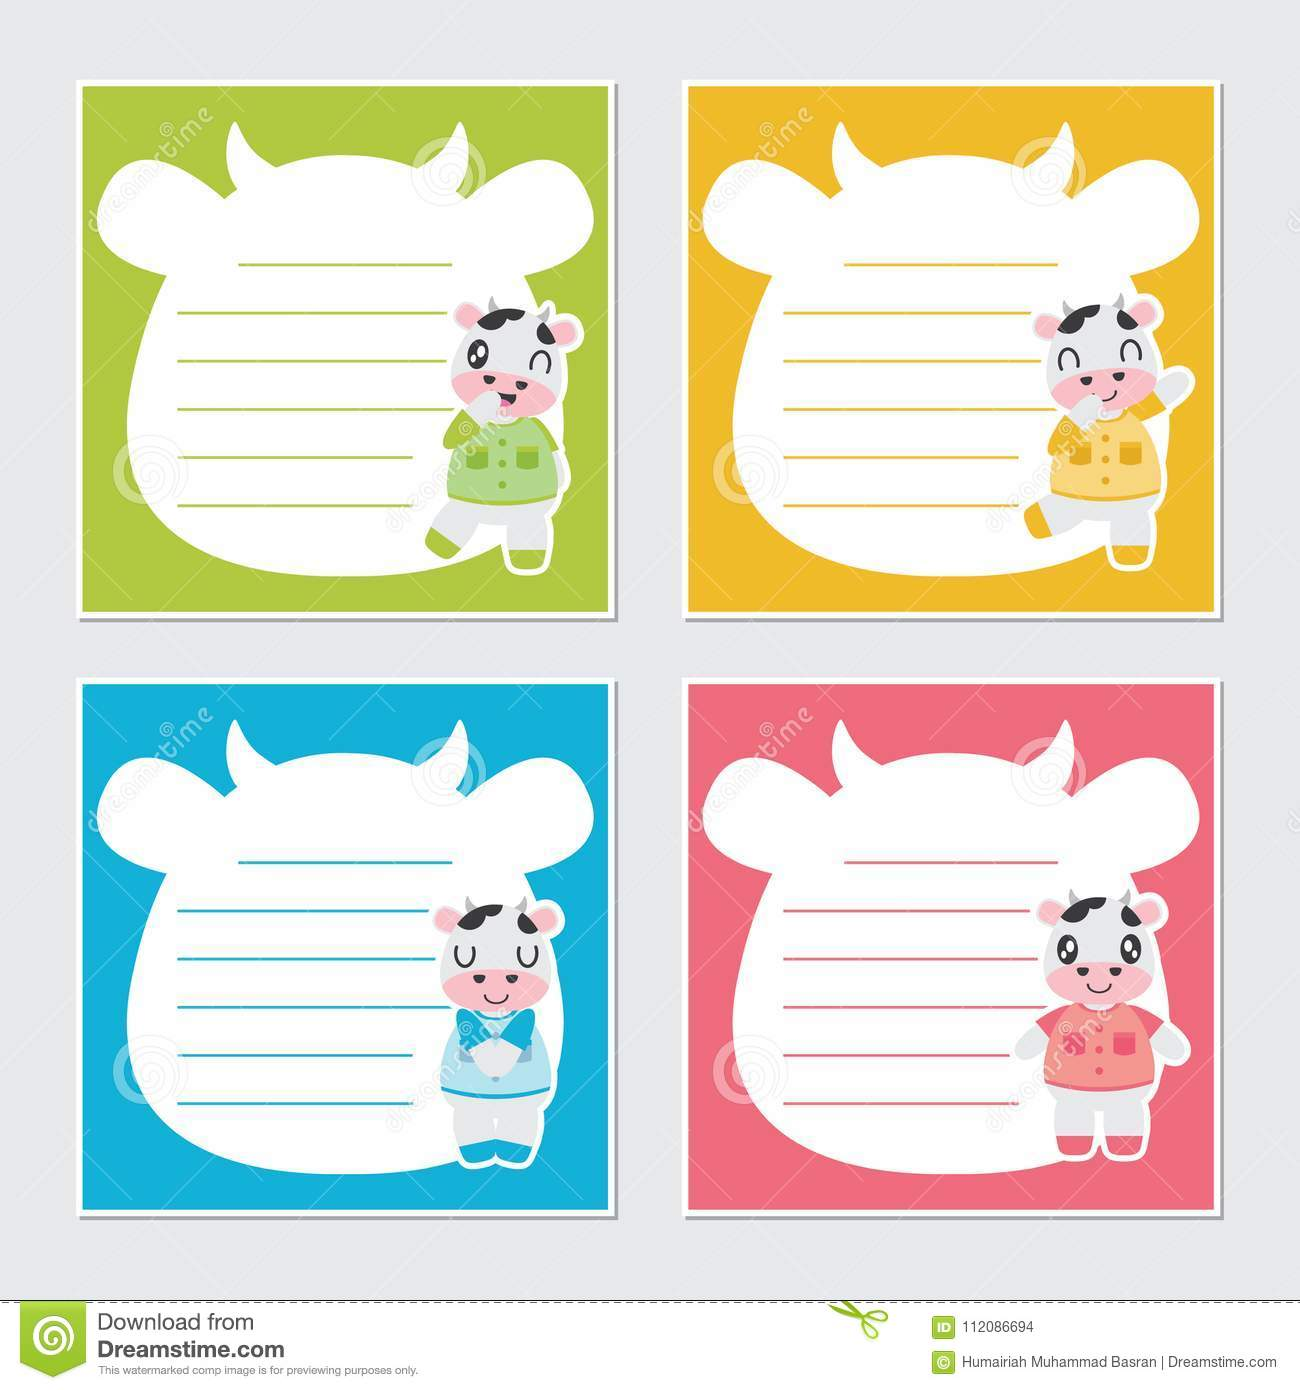 cute colorful cows frame cartoon illustration for kid memo paper